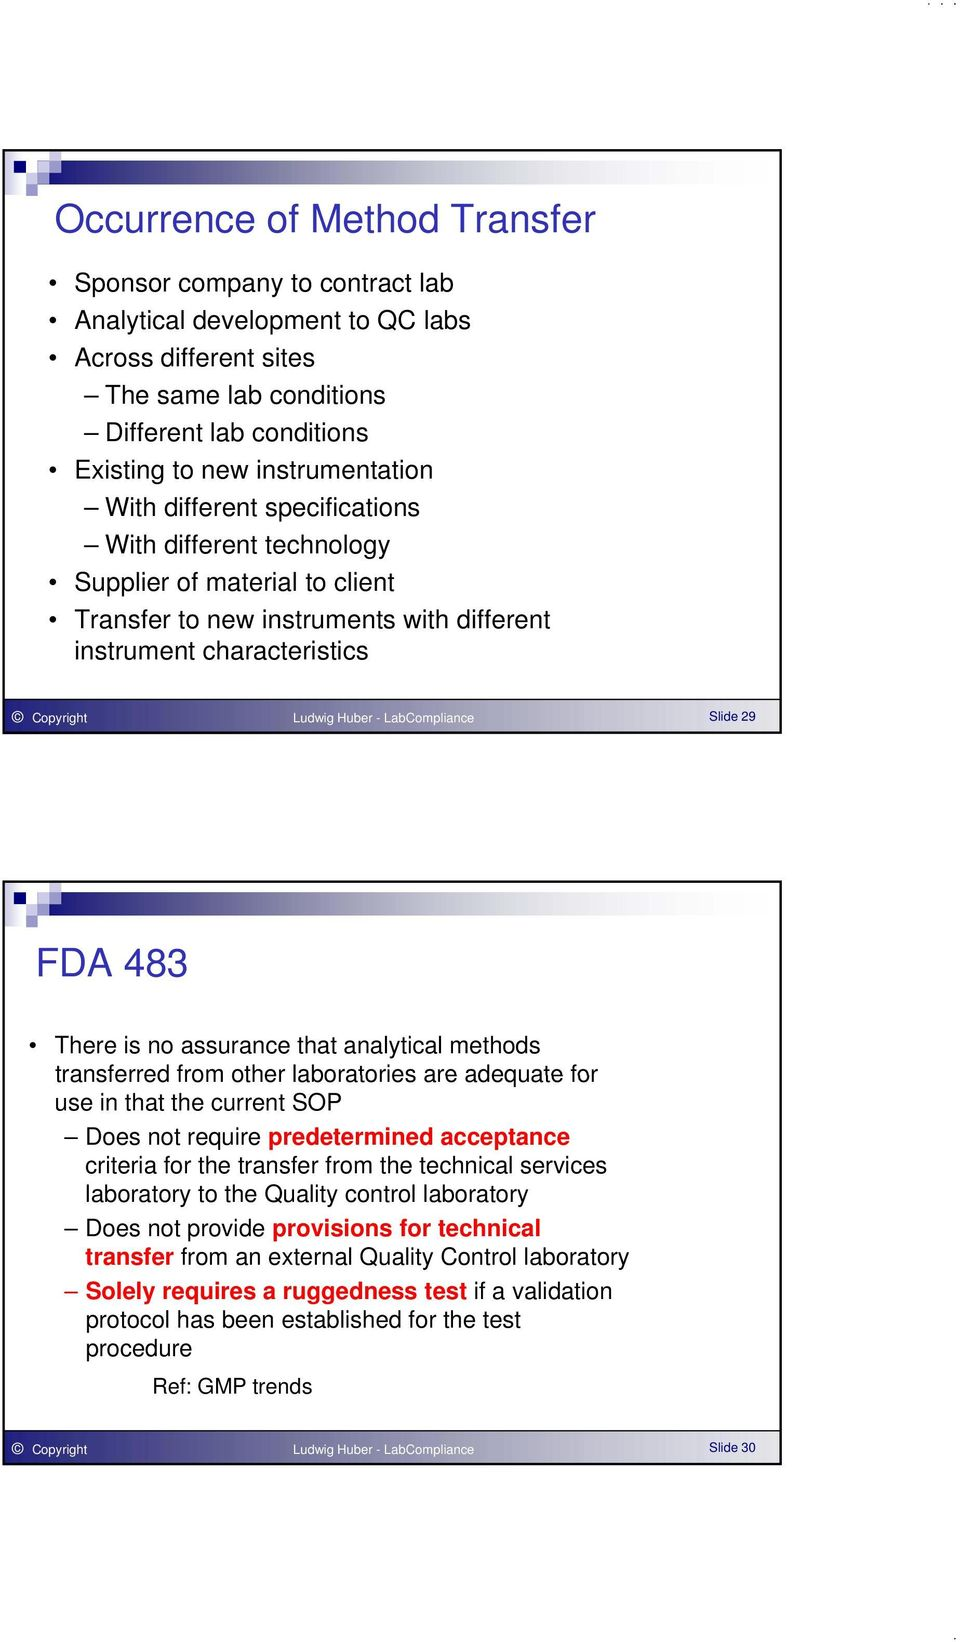 Slide 29 FDA 483 There is no assurance that analytical methods transferred from other laboratories are adequate for use in that the current SOP Does not require predetermined acceptance criteria for